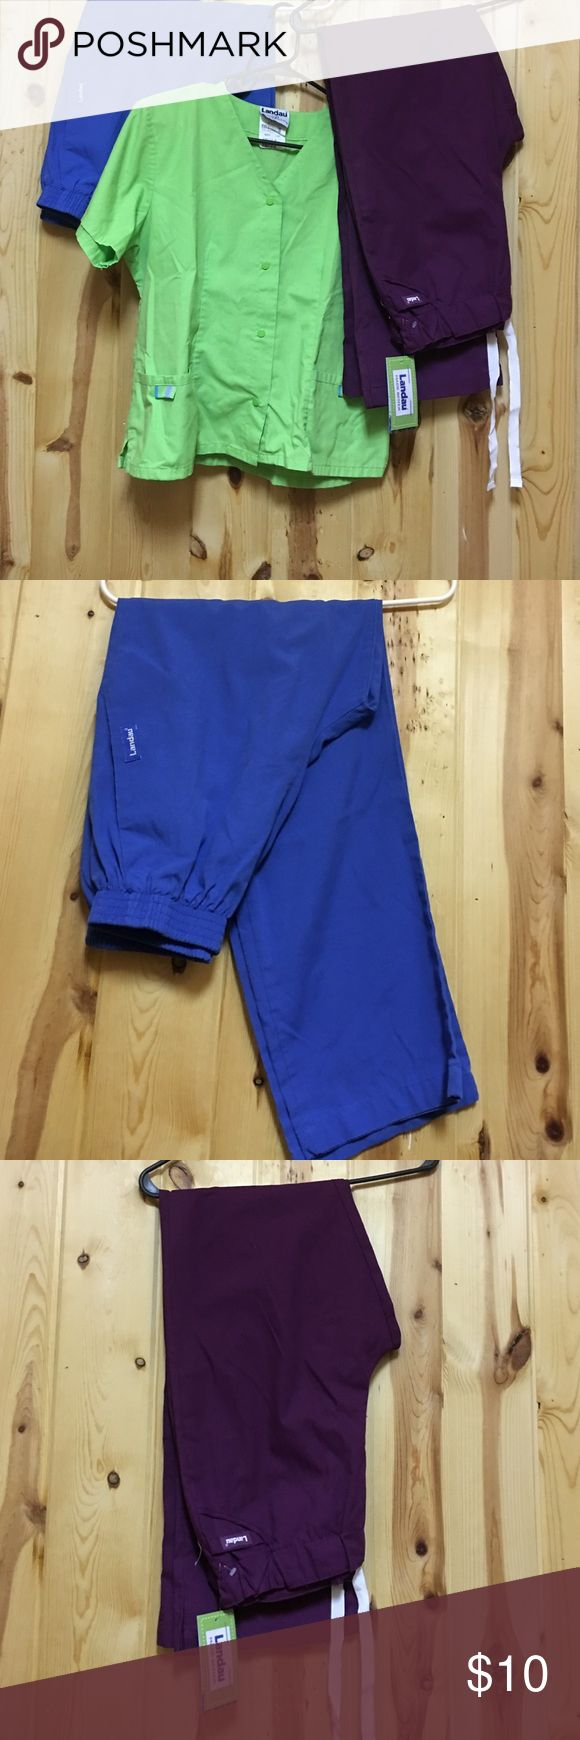 Landau Scrubs Pant & Top GUC $8 Each Small Good Used Condition Large Green Top Maroon Pant NWT Small Blue GUC Pant is Regular Length Landau Other